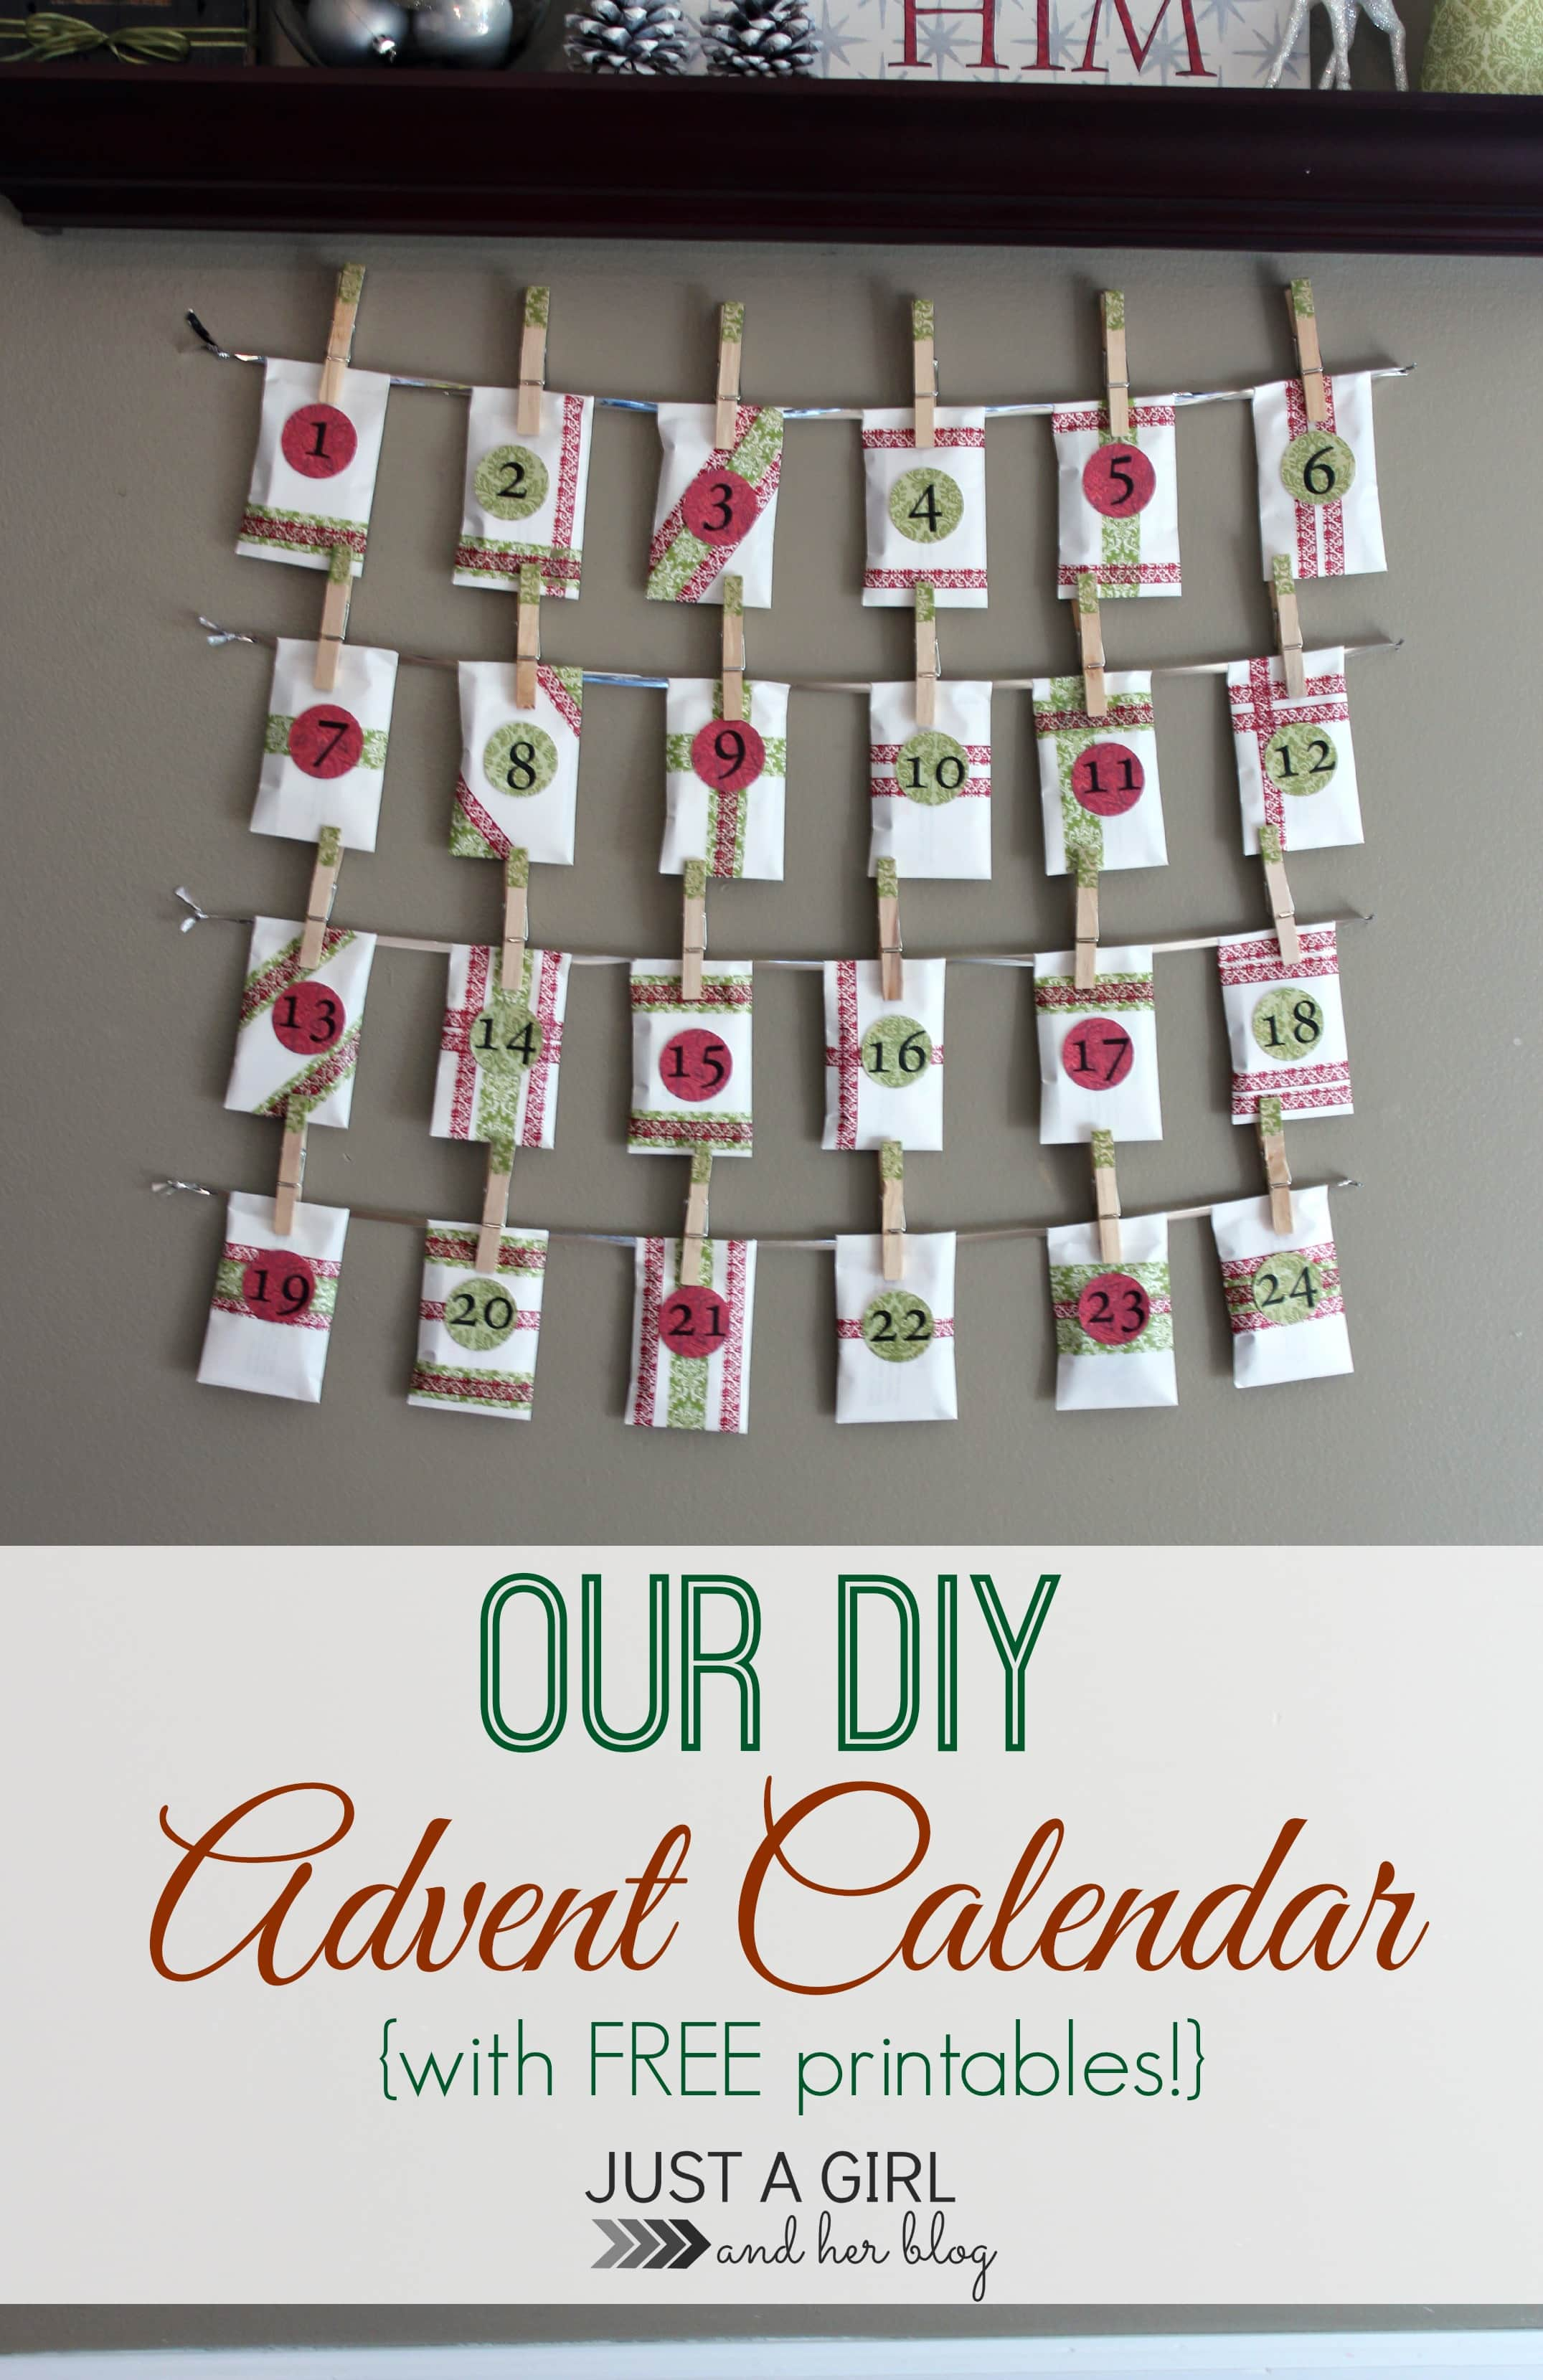 Our diy advent calendar with free printables just a girl and our diy advent calendar with free printables by just a girl and her blog solutioingenieria Gallery